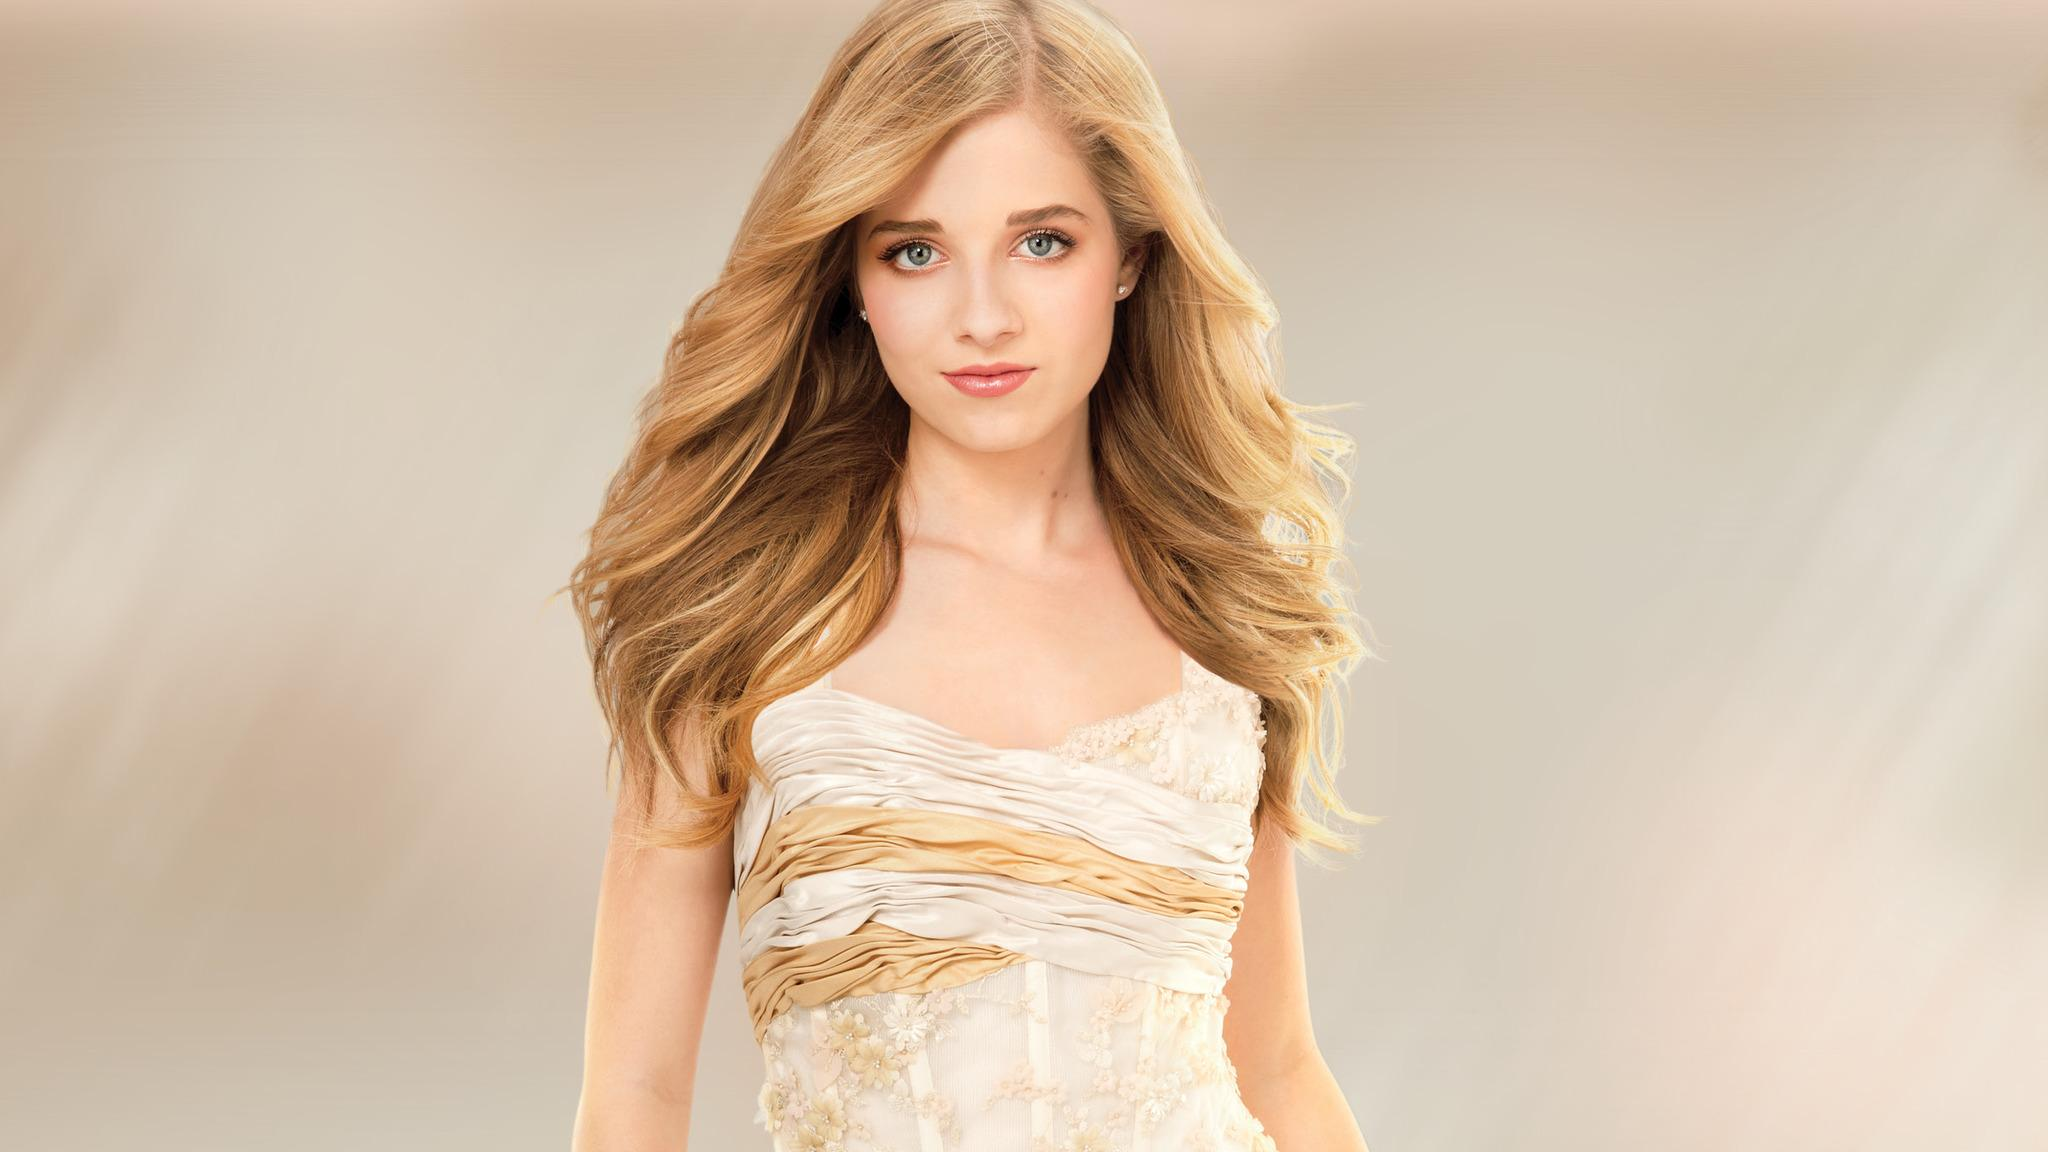 Jackie Evancho at Newton Theatre - Newton, NJ 07860